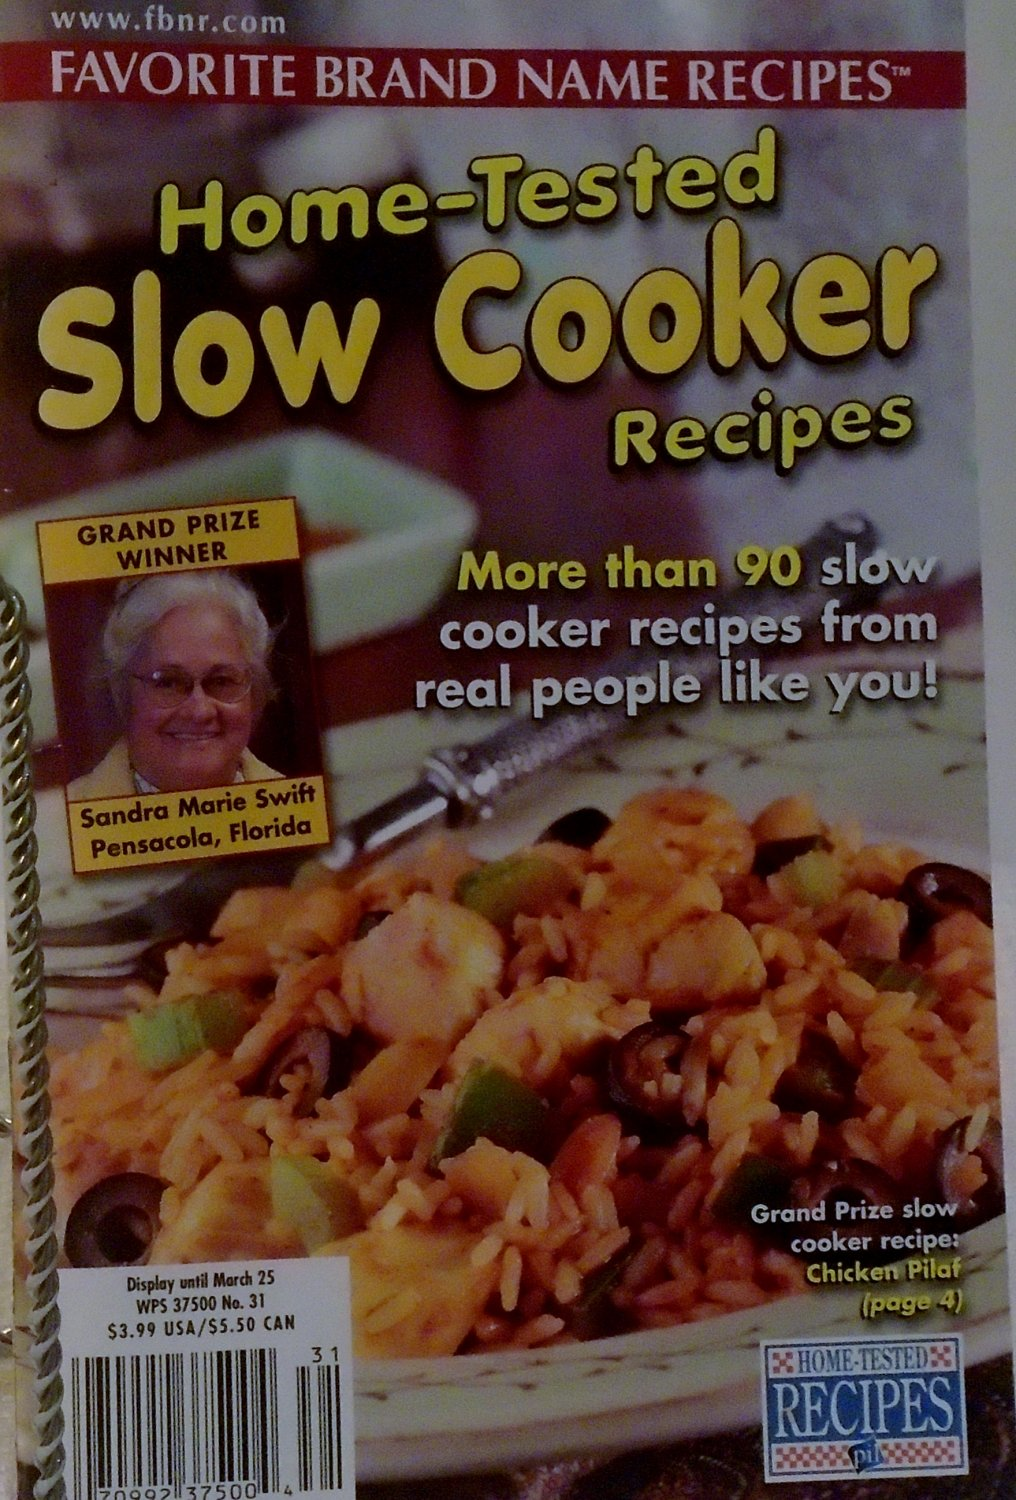 Home Tested Slow  Cooker Recipes vol. 7 No. 31 March 25, 2003